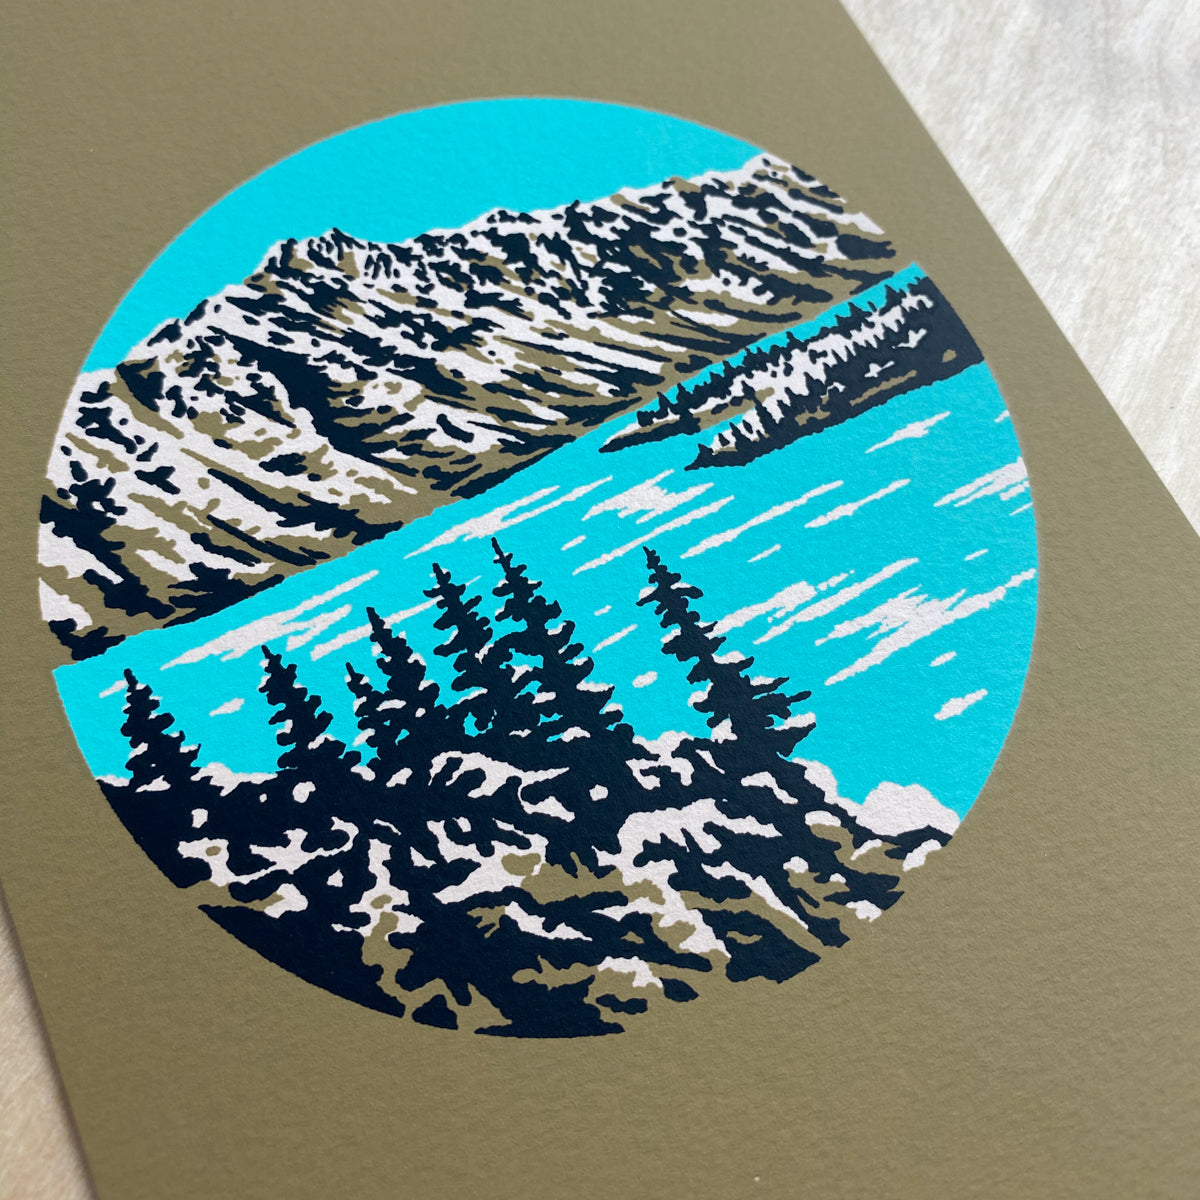 Crater Lake Powder - Signed Print #188